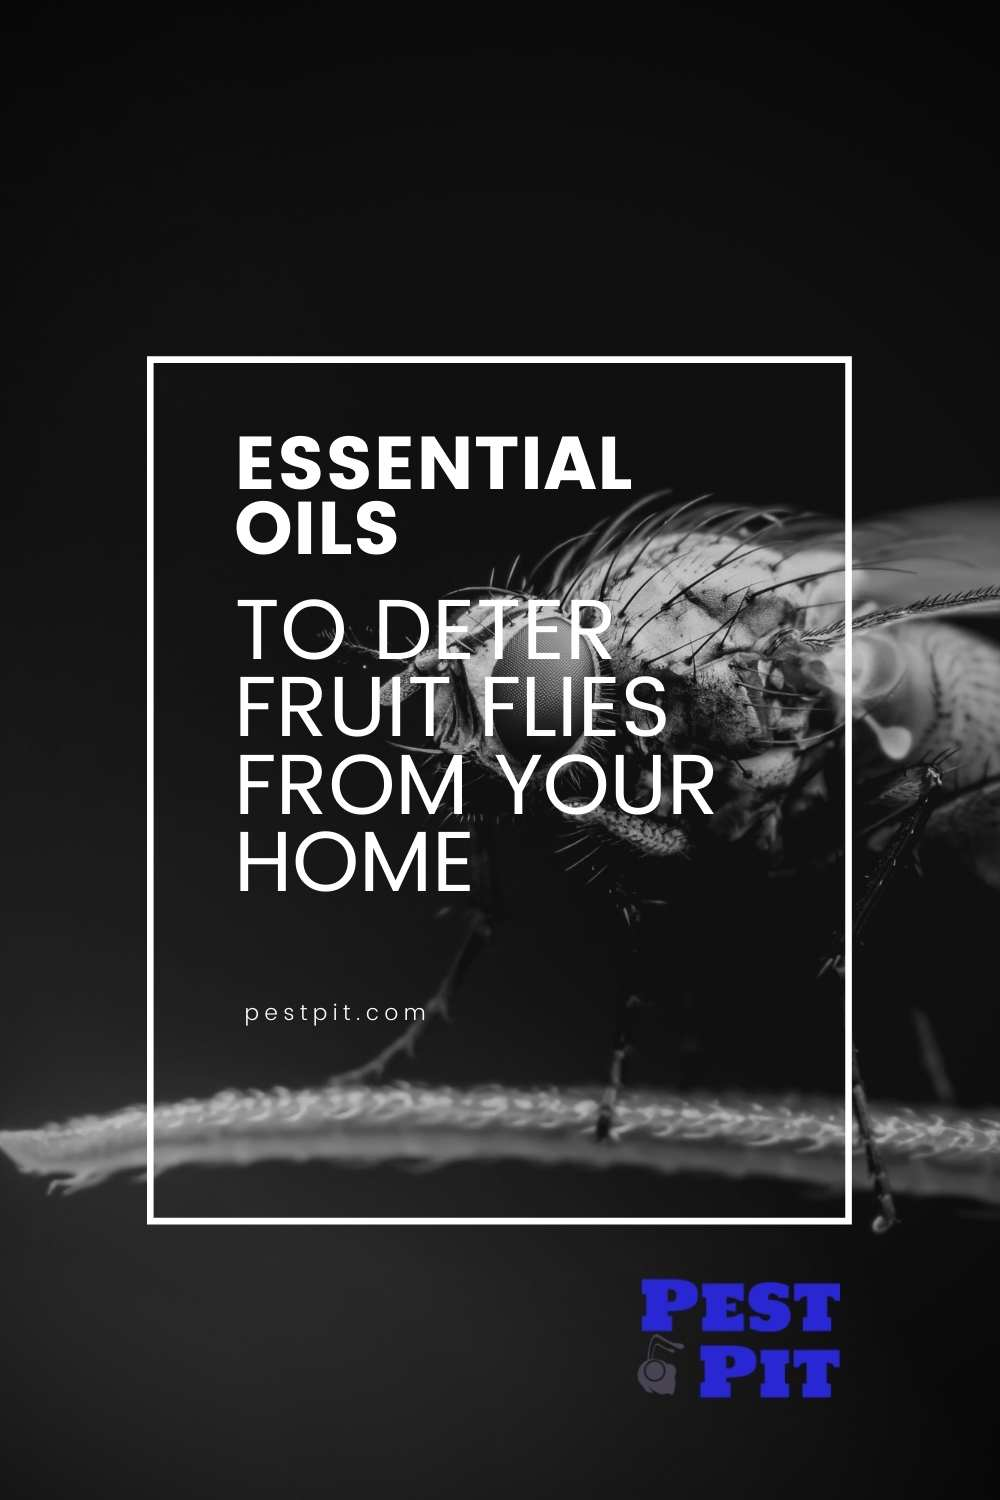 Essential Oils To Deter Fruit Flies From Your Home